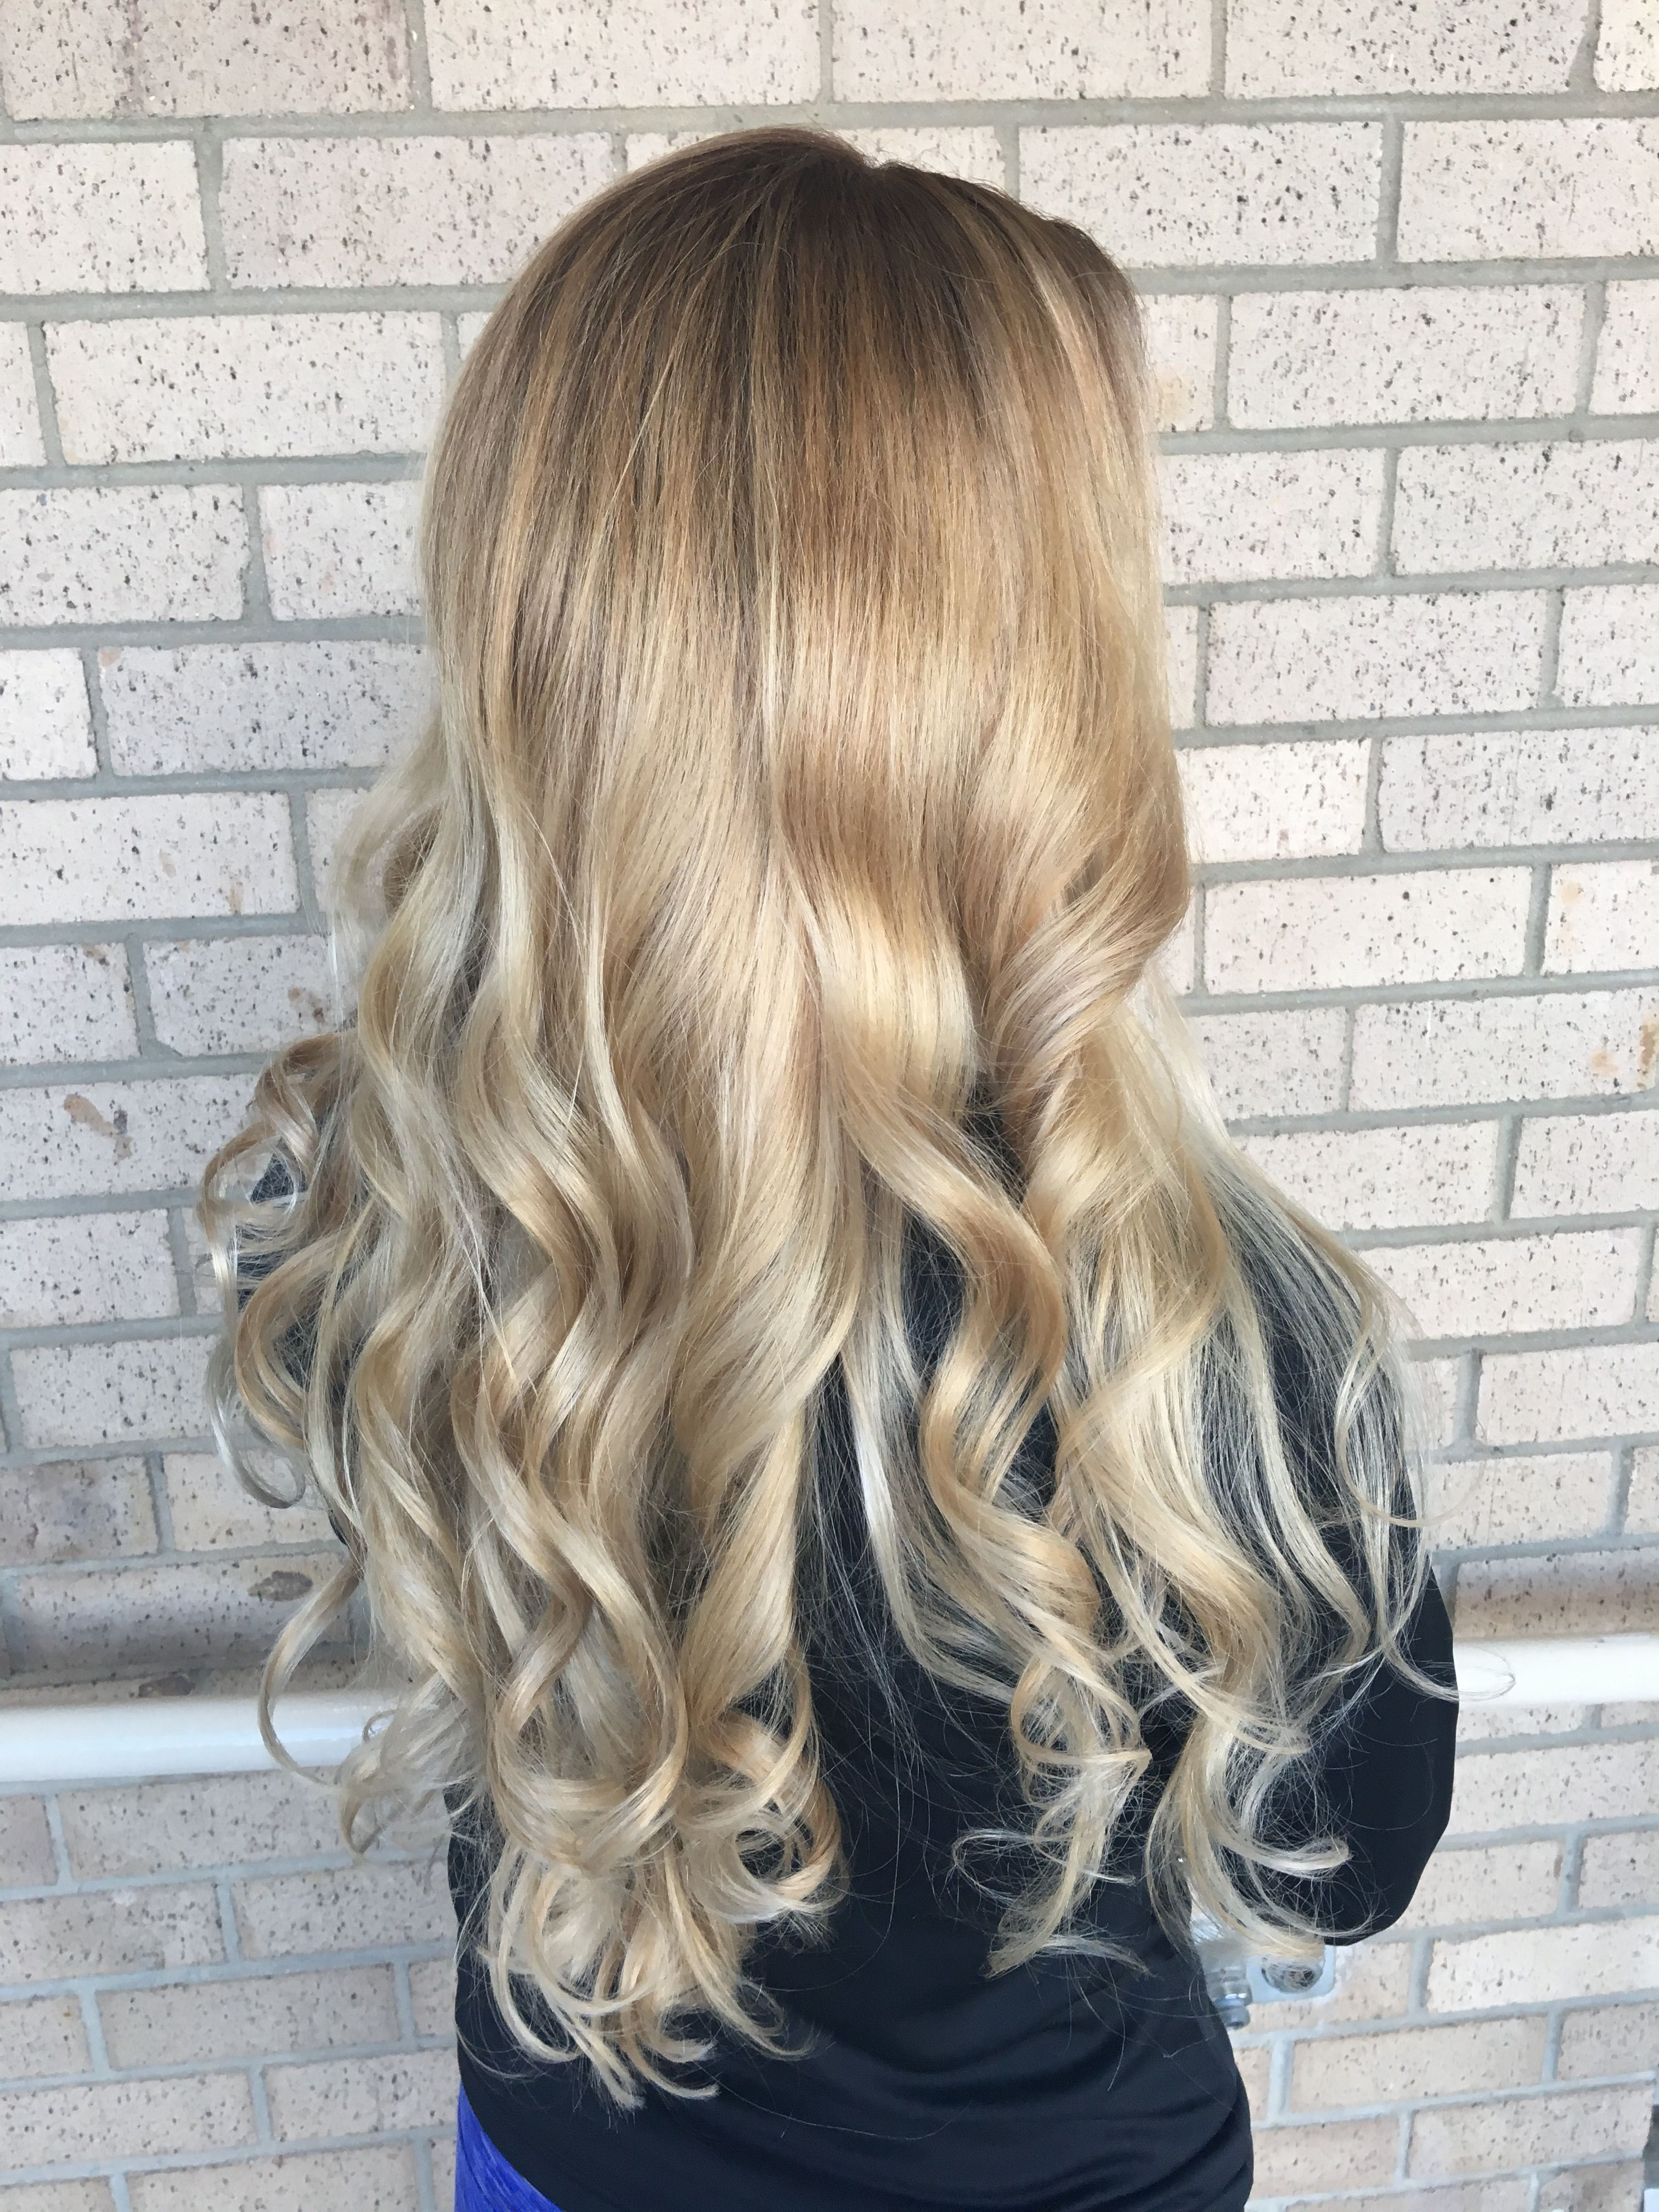 Pin By Madison C On No More Bad Hair Days